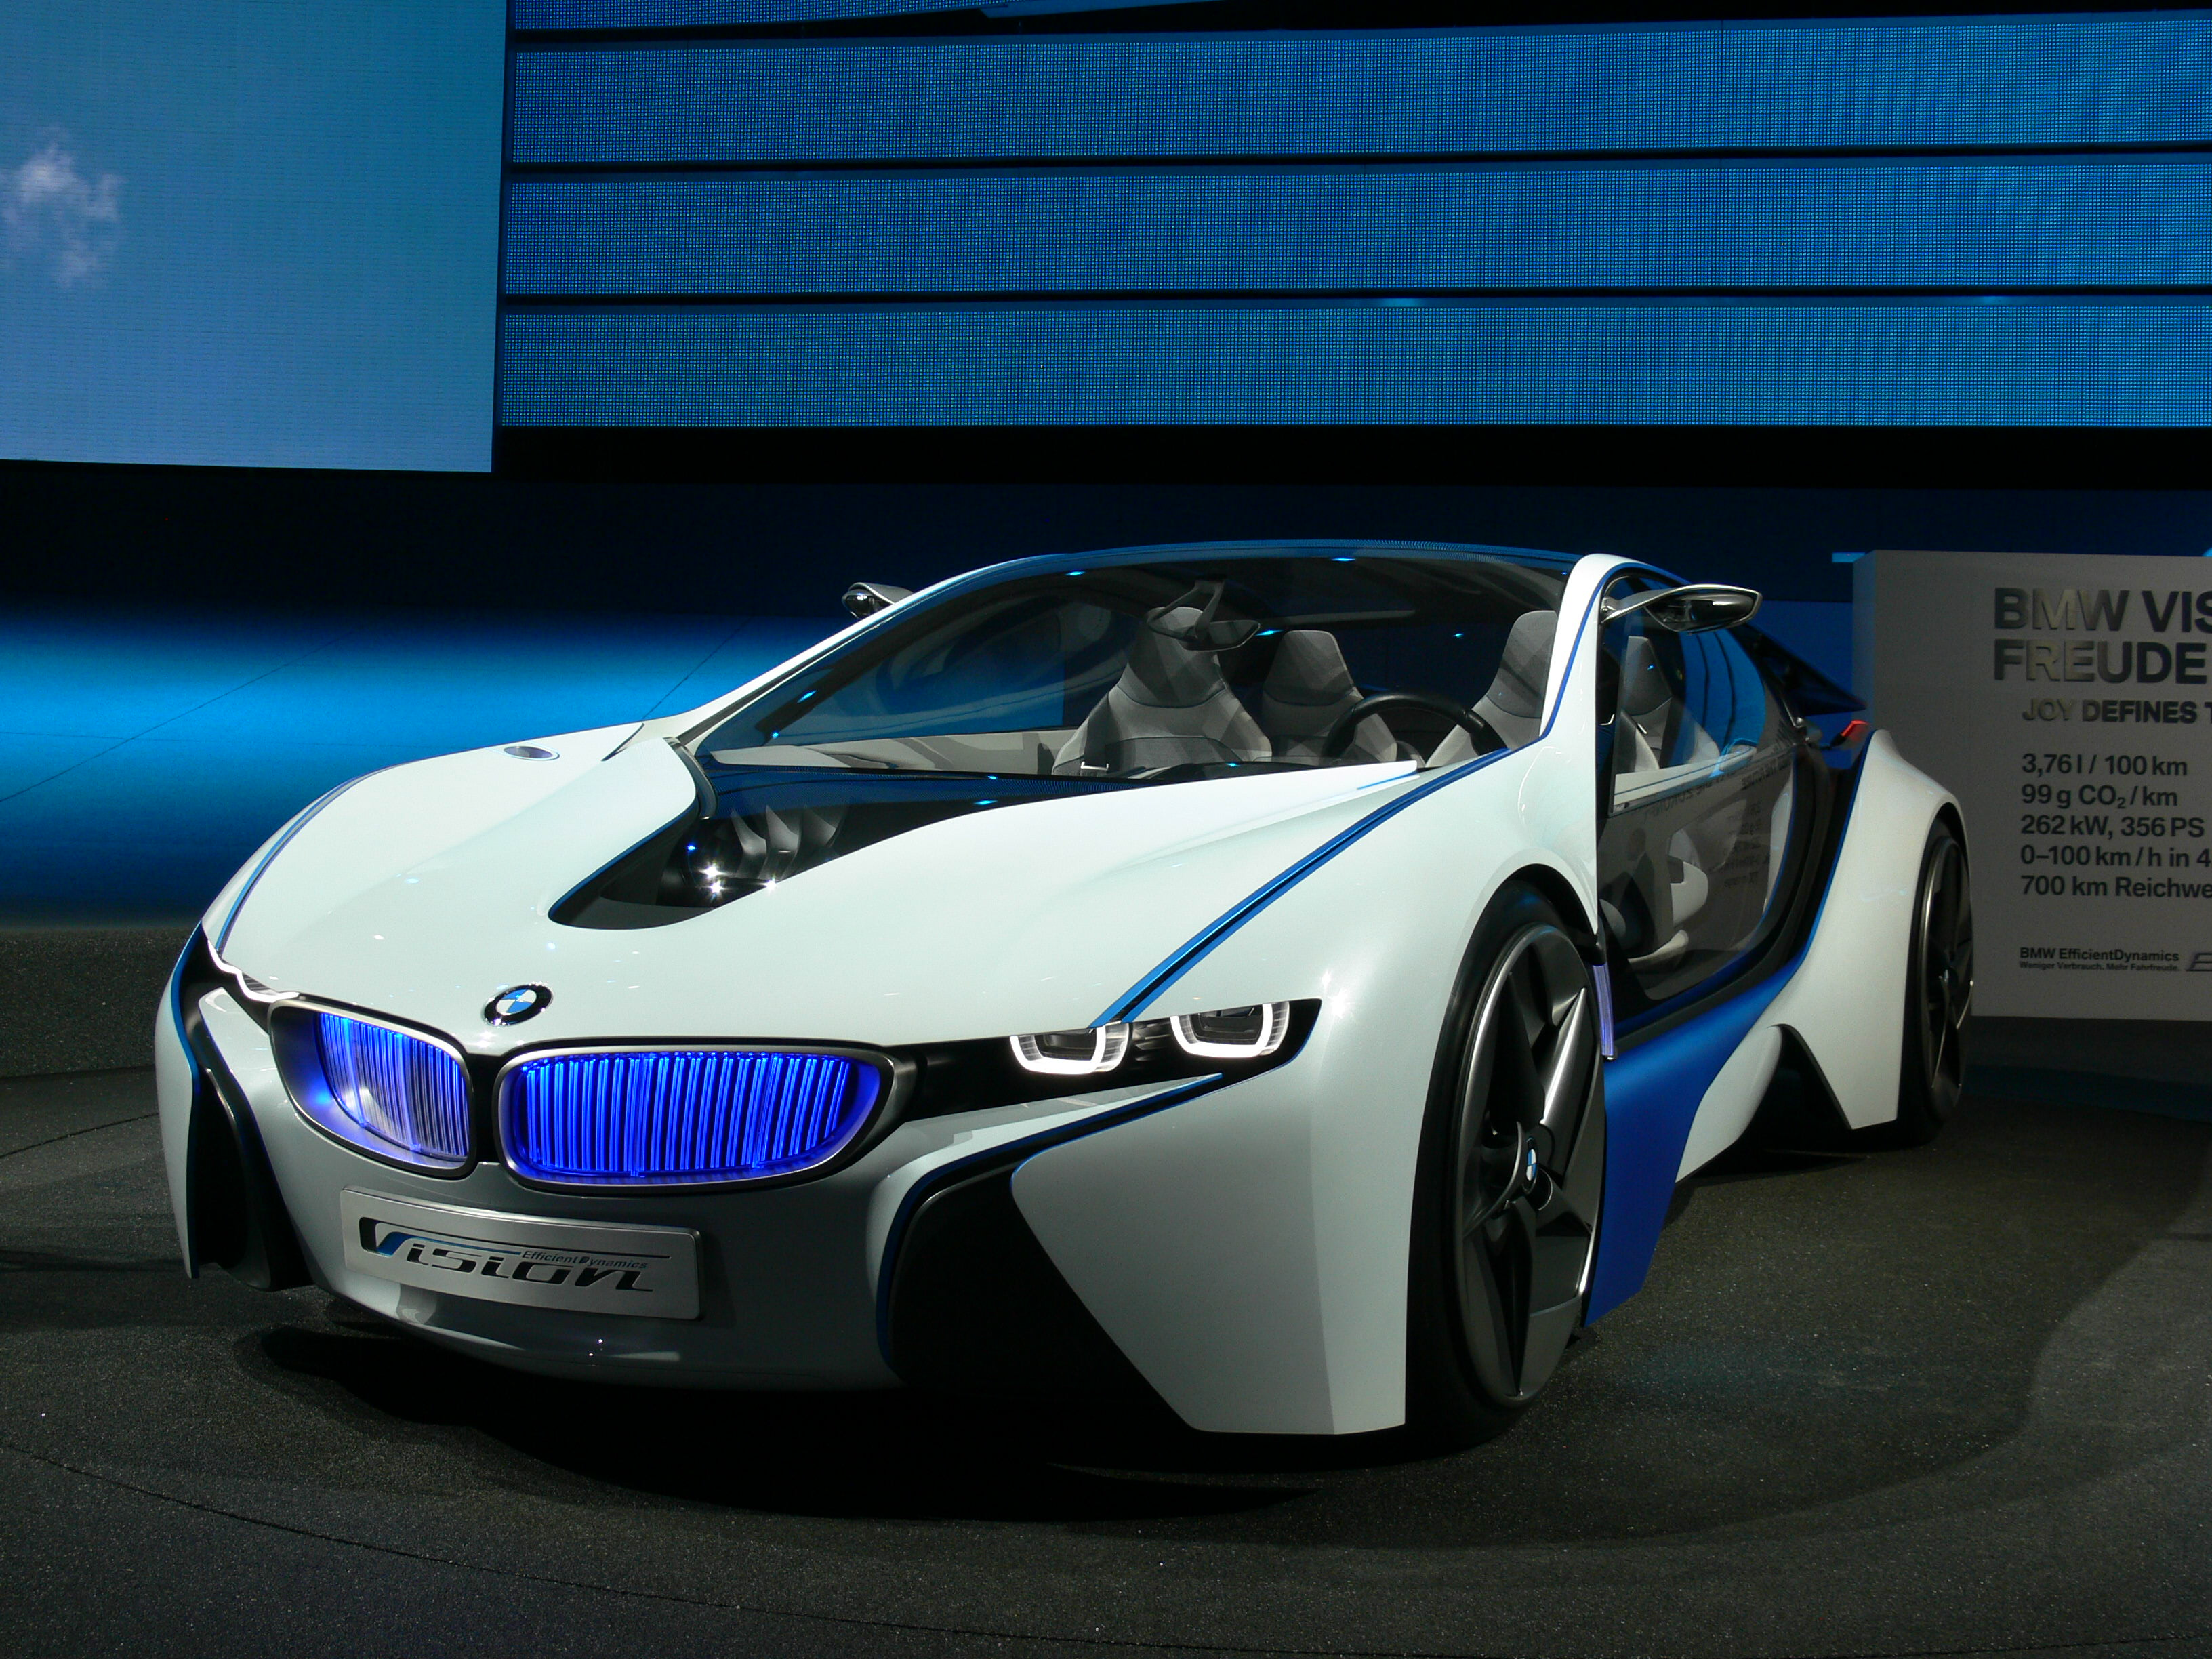 BMW_Concept_Vision_Efficient_Dynamics_Front.JPG